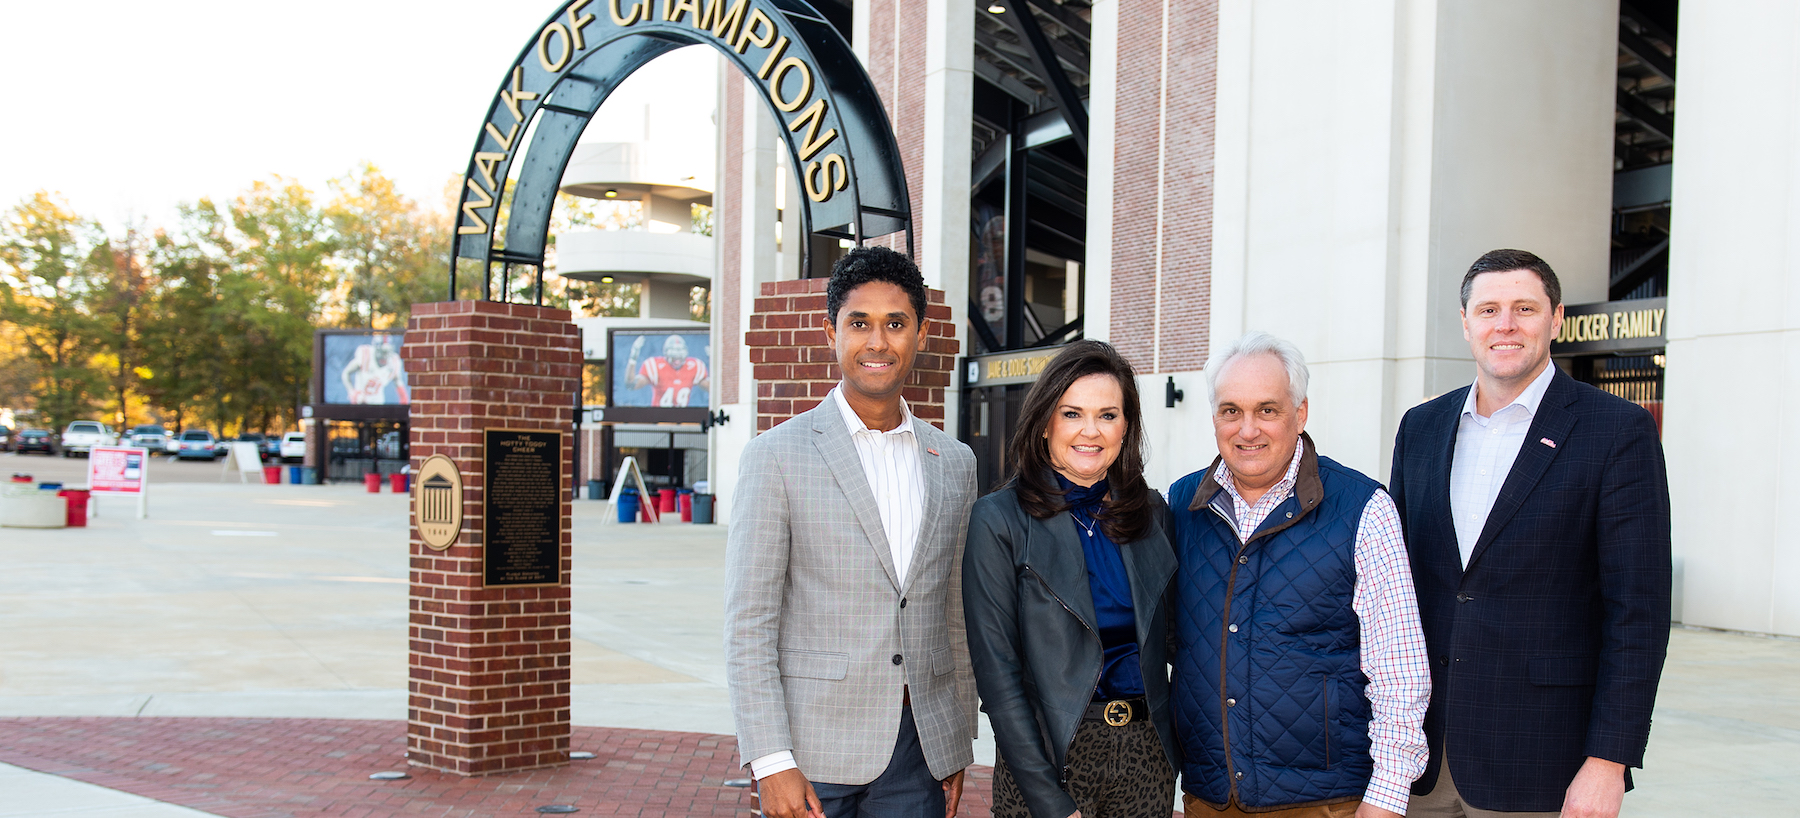 RJ Young President Supports Ole Miss Athletics with Major Gift